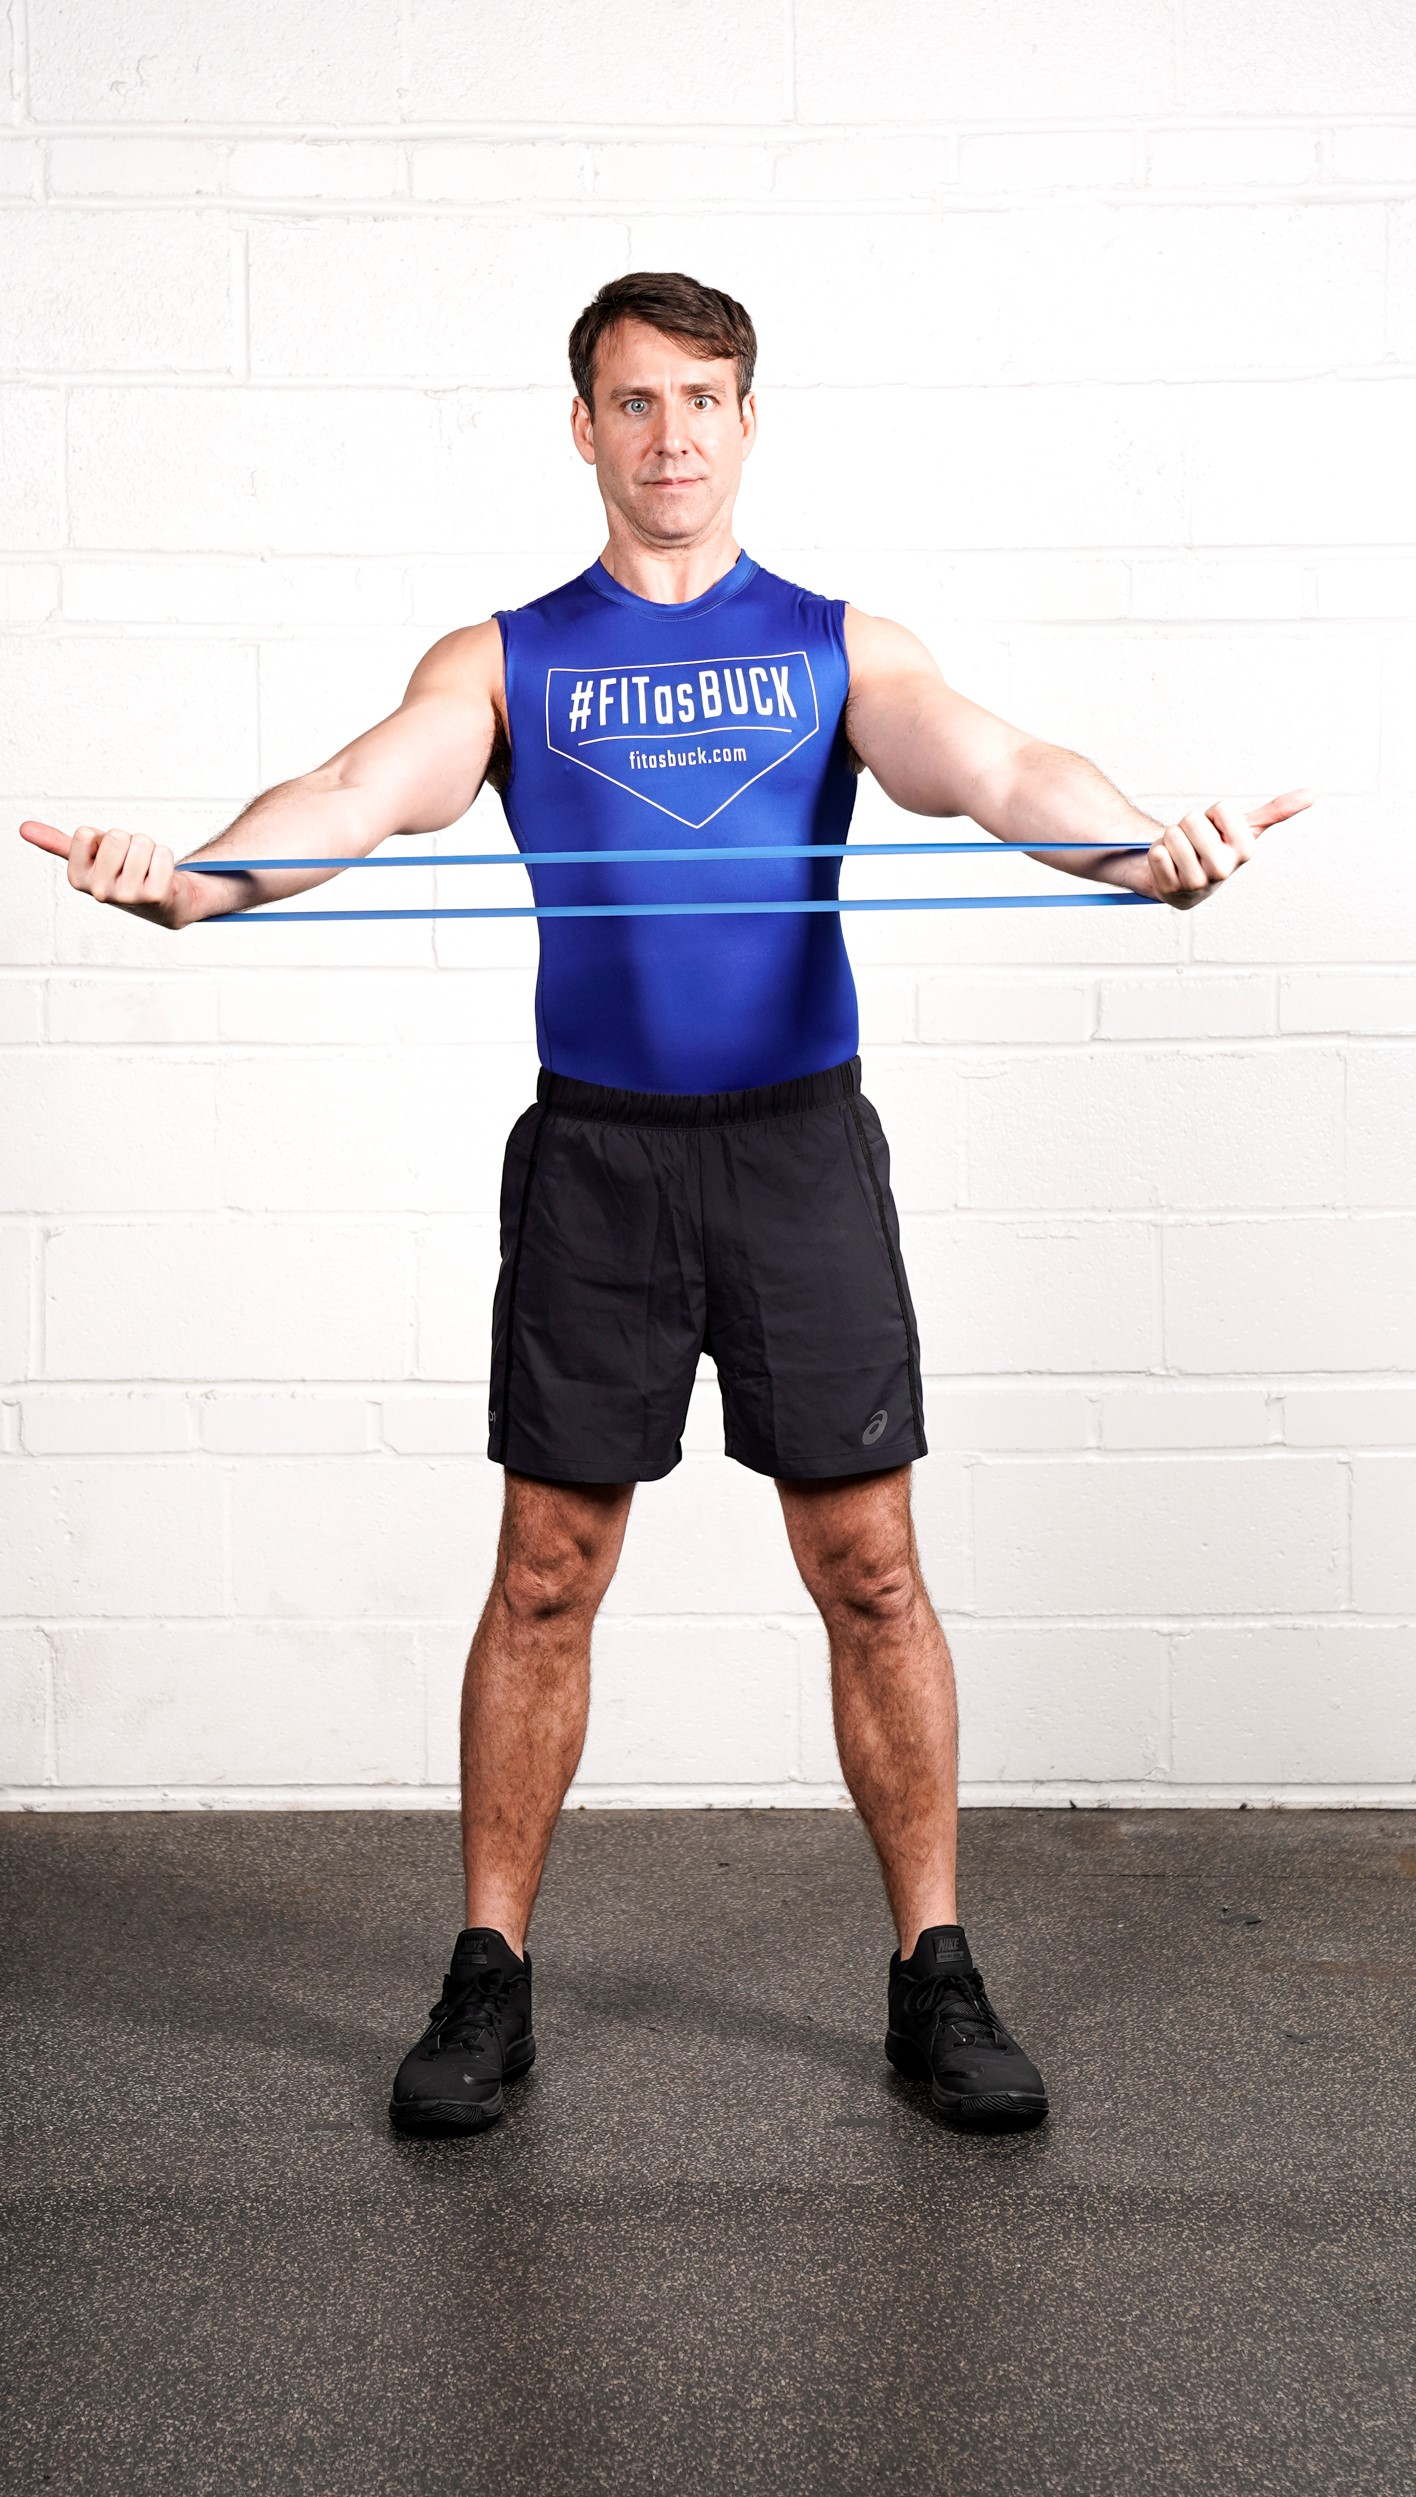 Underhand Resistance Band Pull Apart Hold - - DURATION: 30 seconds- SETS: 1